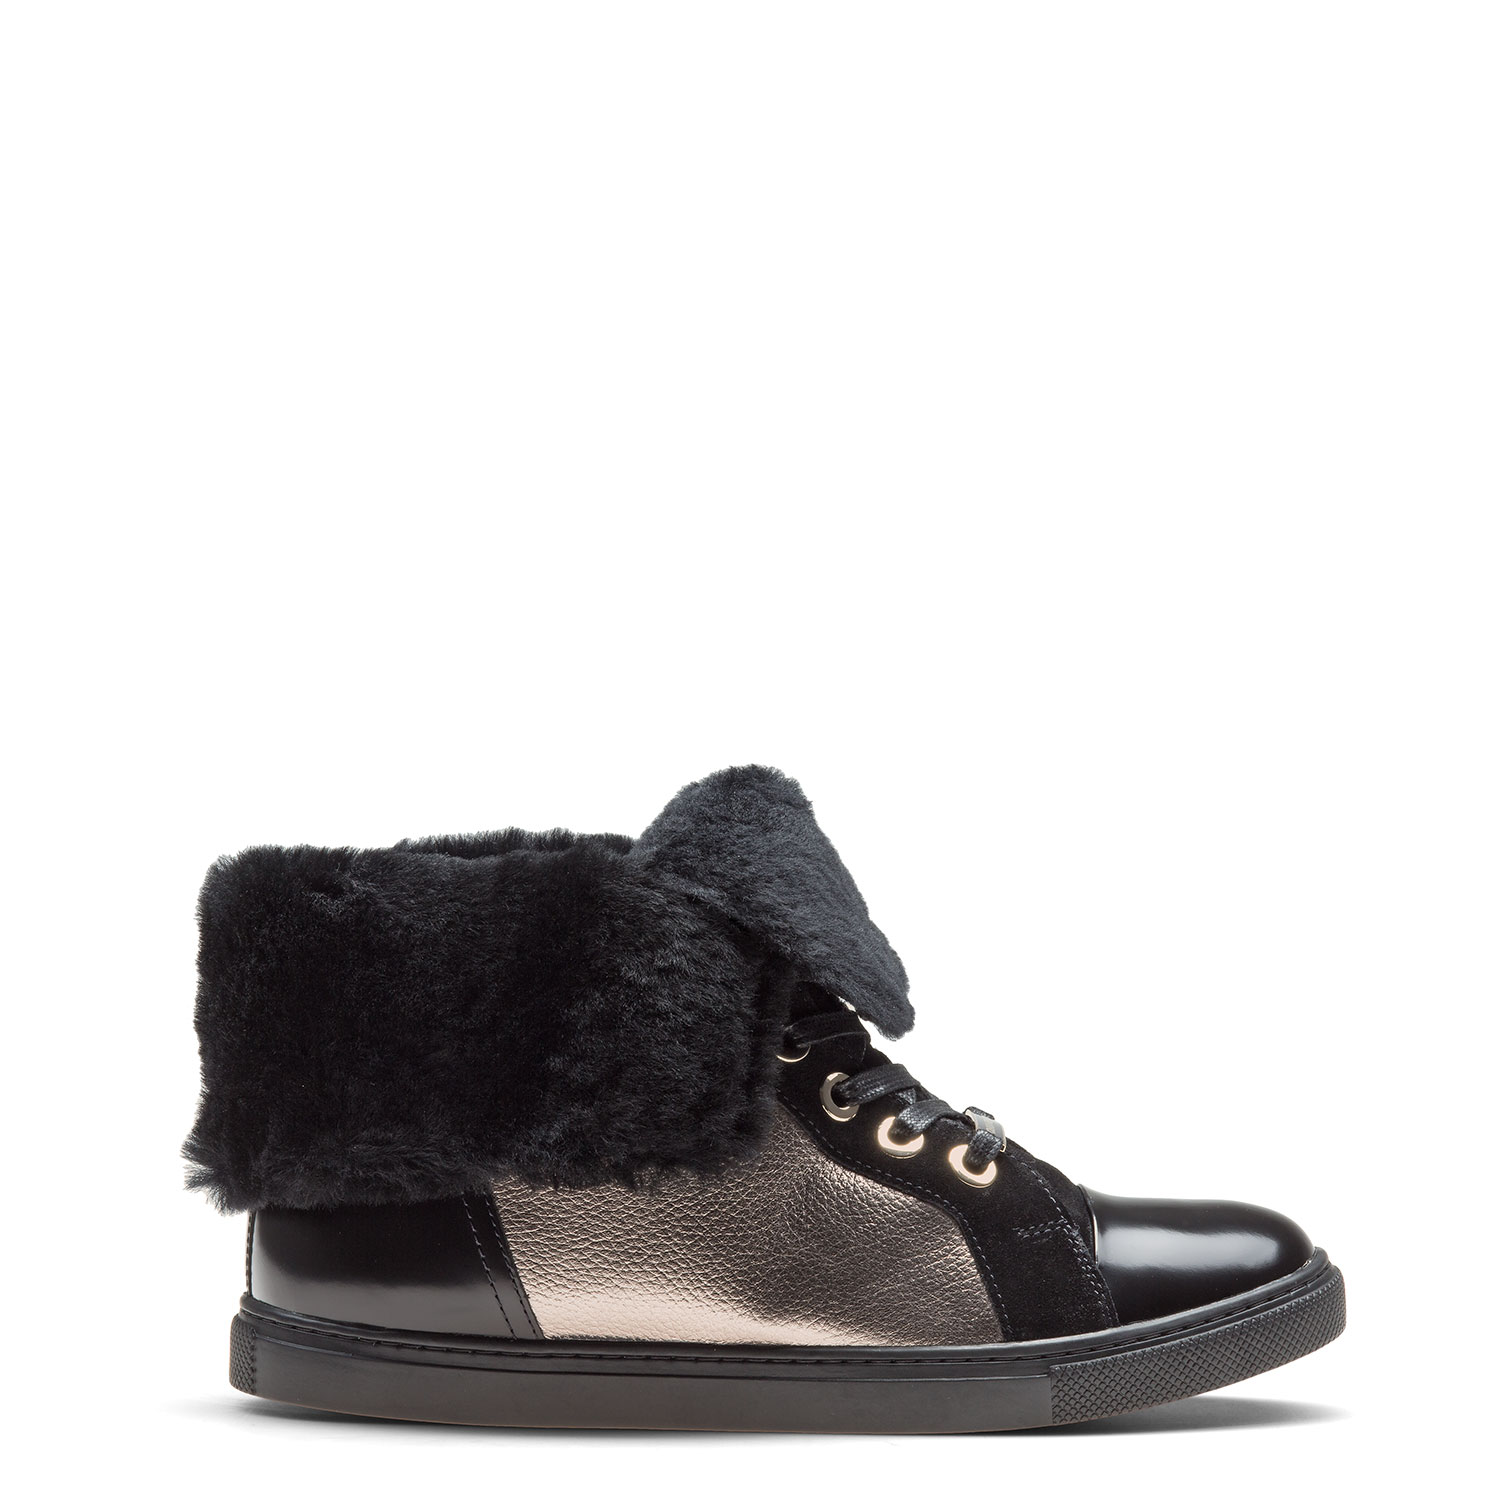 Women's fur-lined ankle boots CARLO PAZOLINI FG-YNK9-8